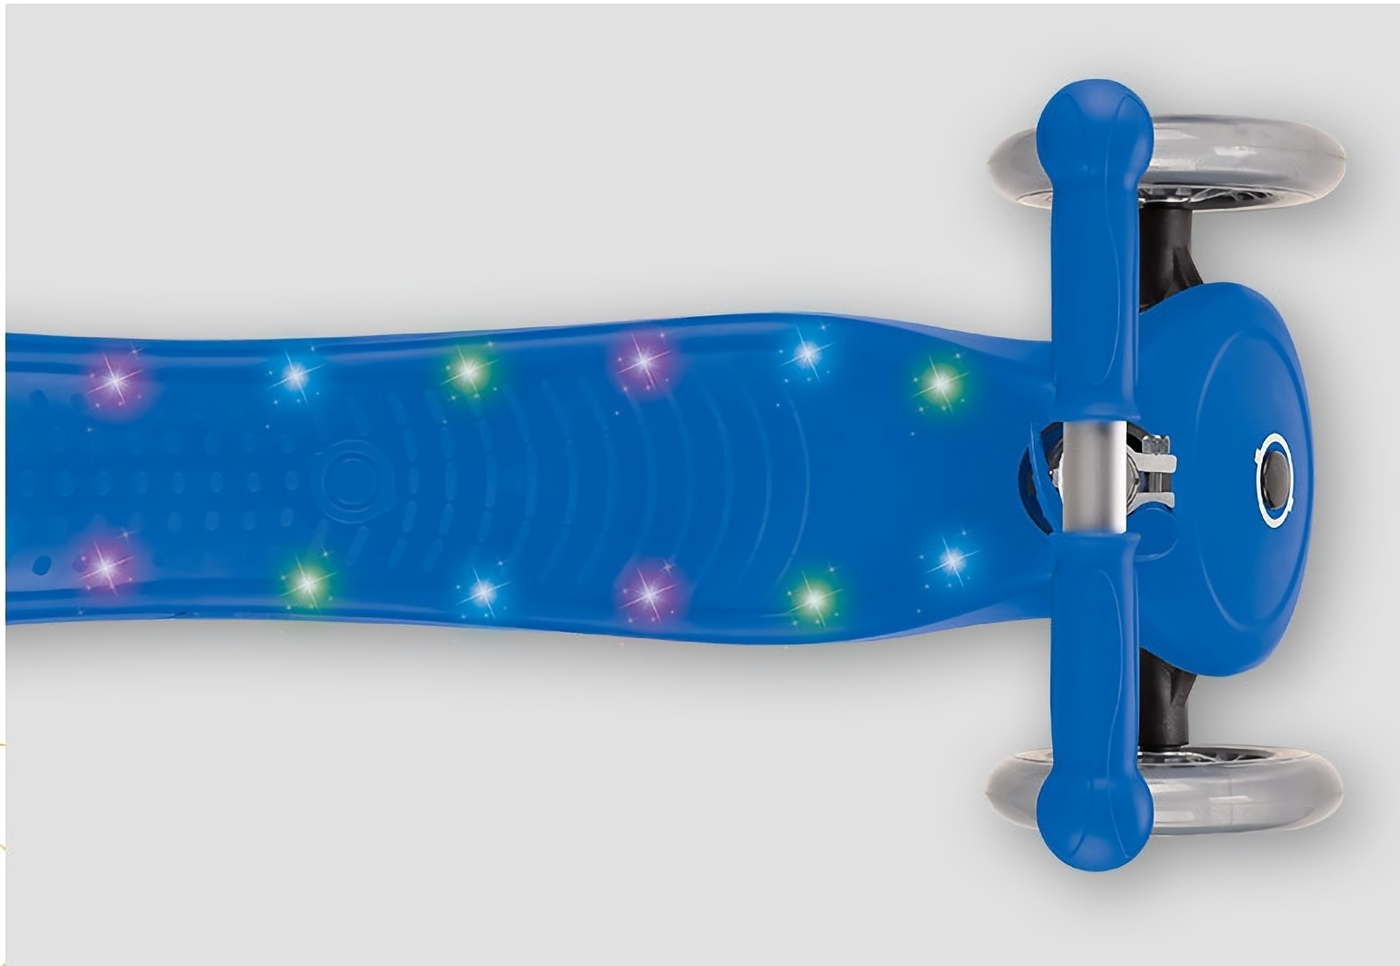 ¡Monta un Scooter Light-Up!